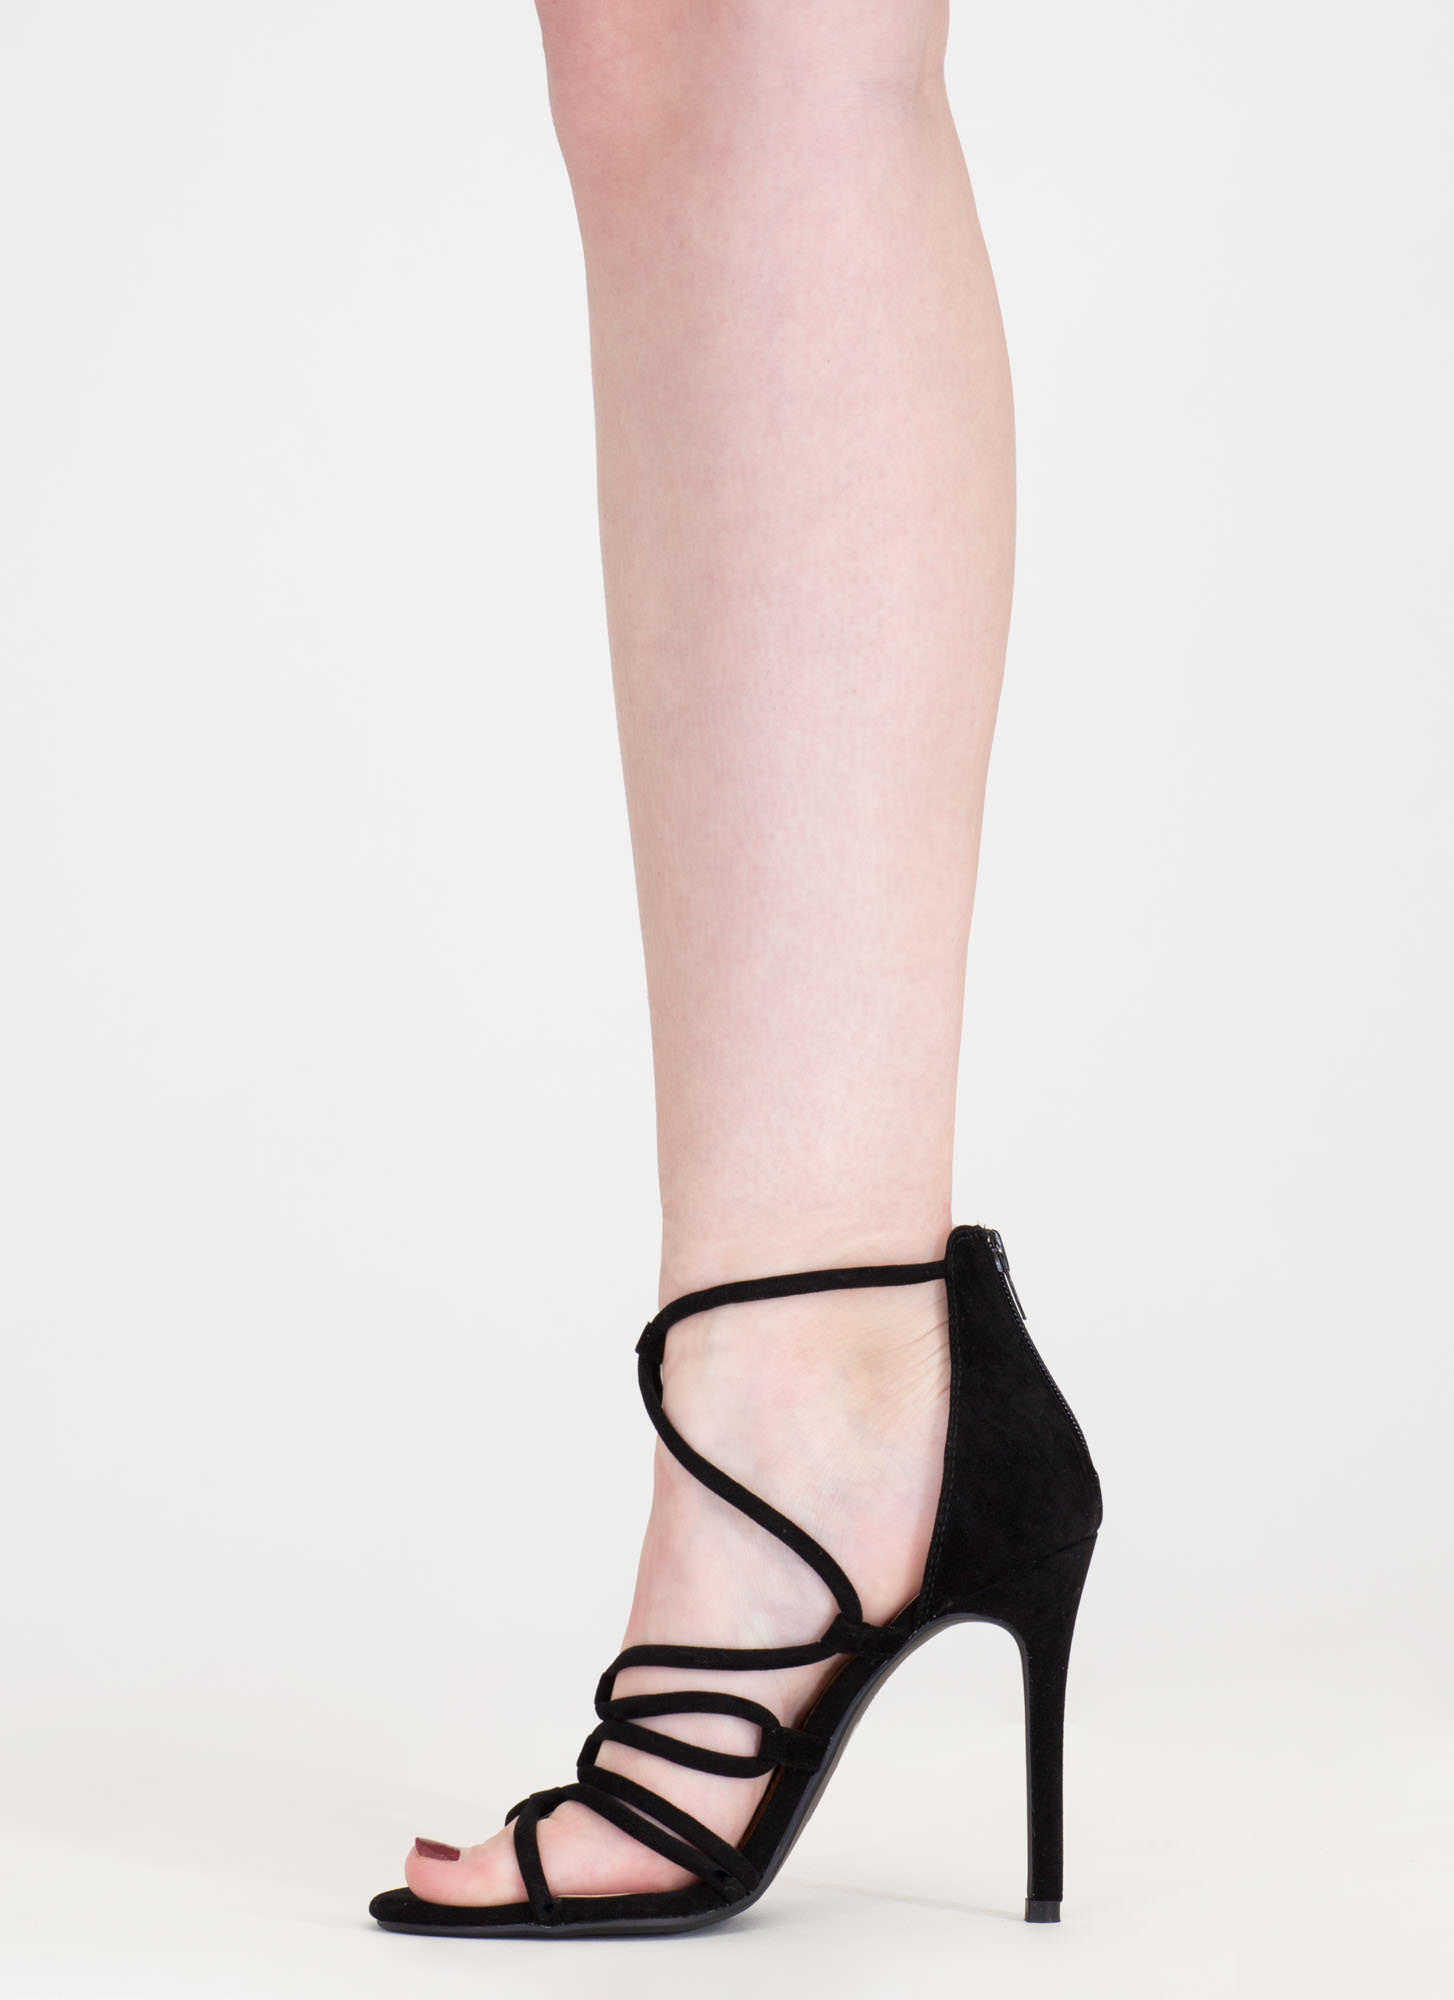 Loop There It Is Caged Stiletto Heels BLACK